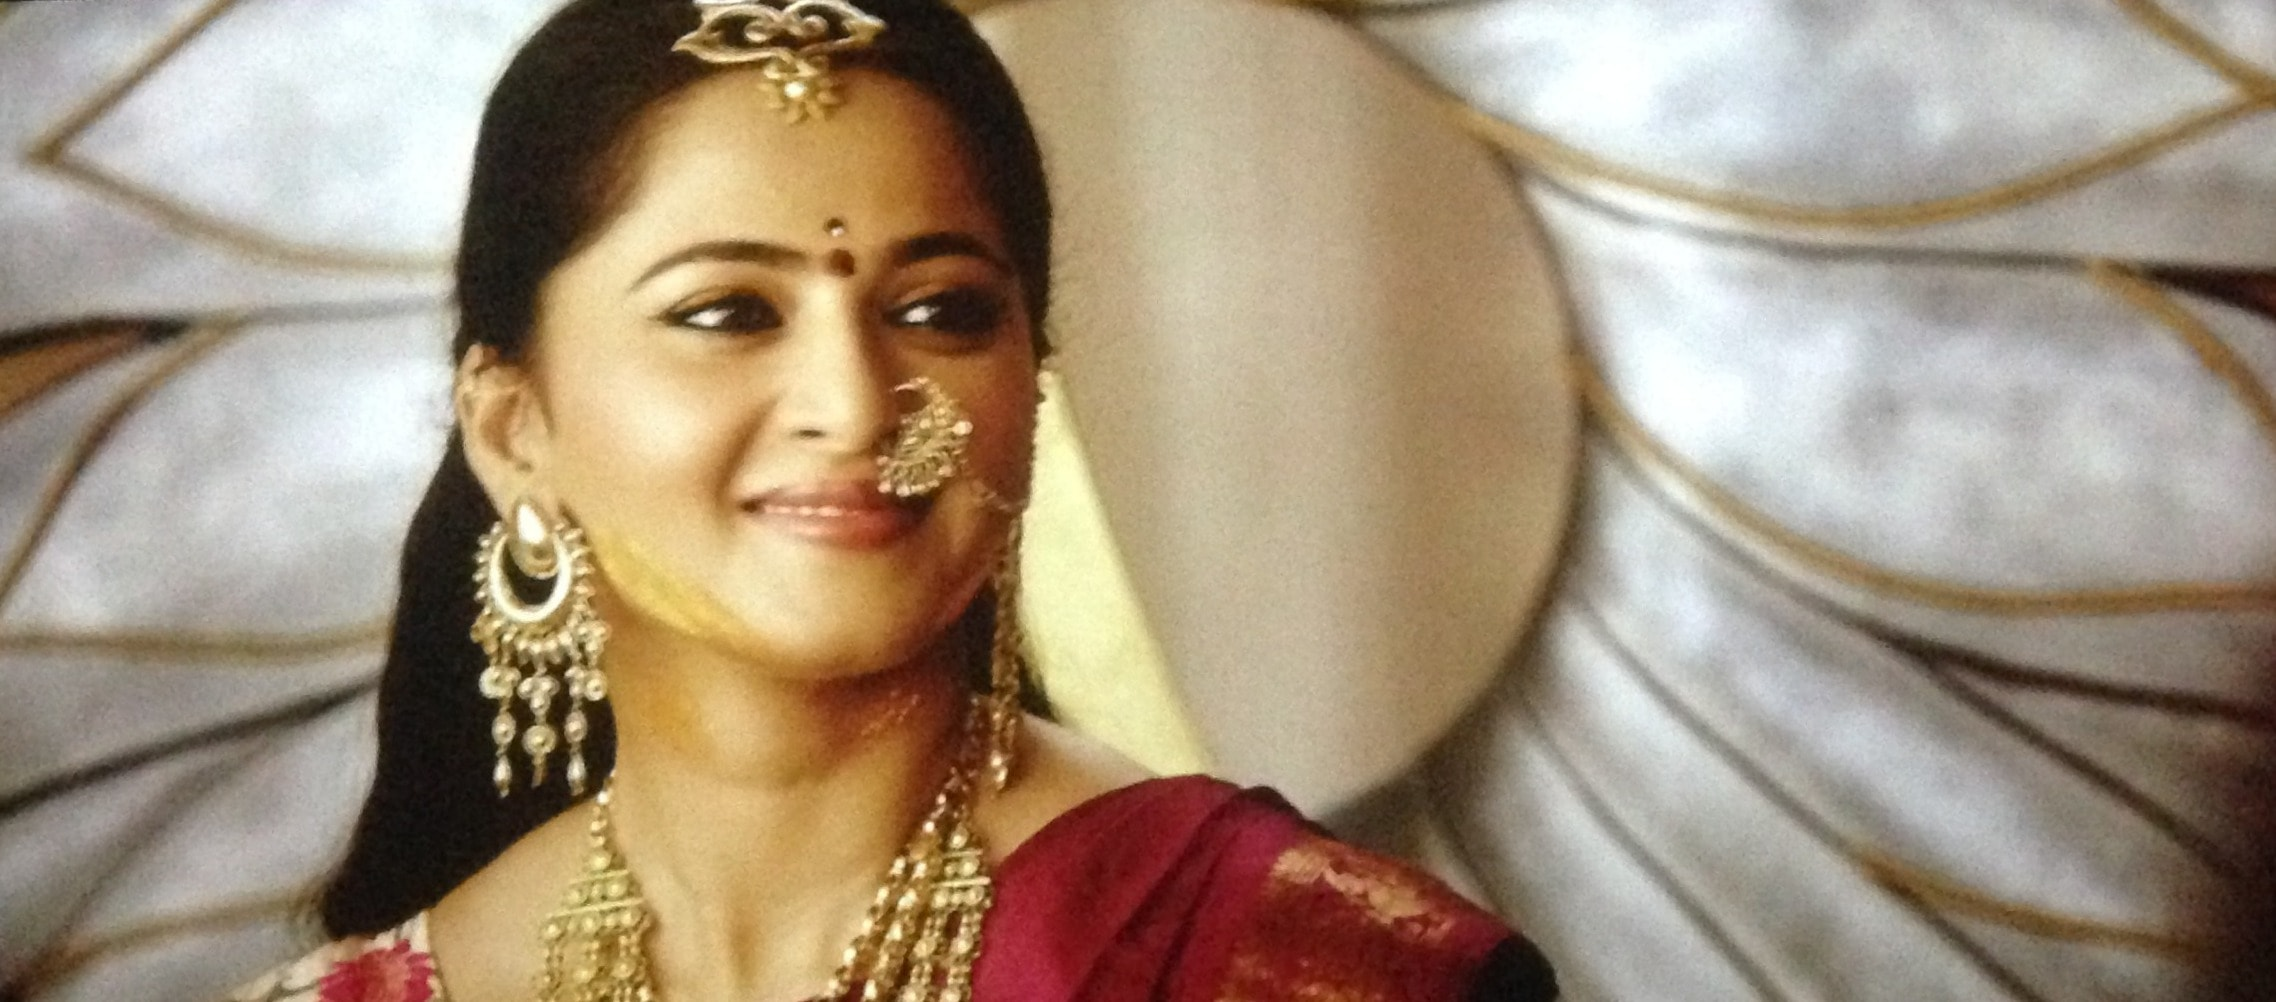 Anushka Shetty in bahubali 2 The conclusion, Anuhska Shetty hair accessory in bahubali 2